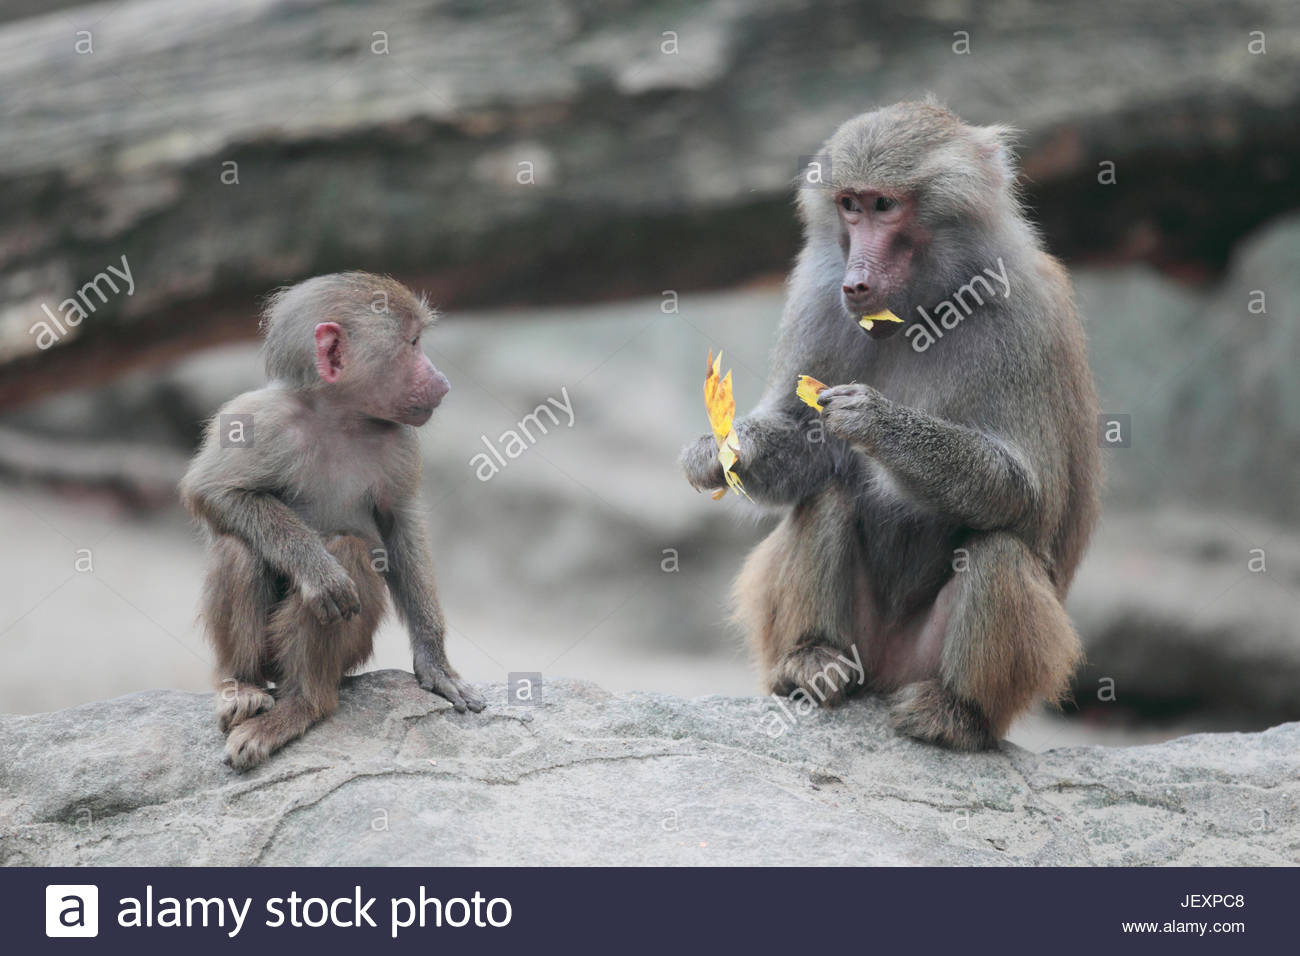 Portrait of a young and adult hamadryas or scared baboon, Papio hamadryas, a species of baboon from the Old World - Stock Image